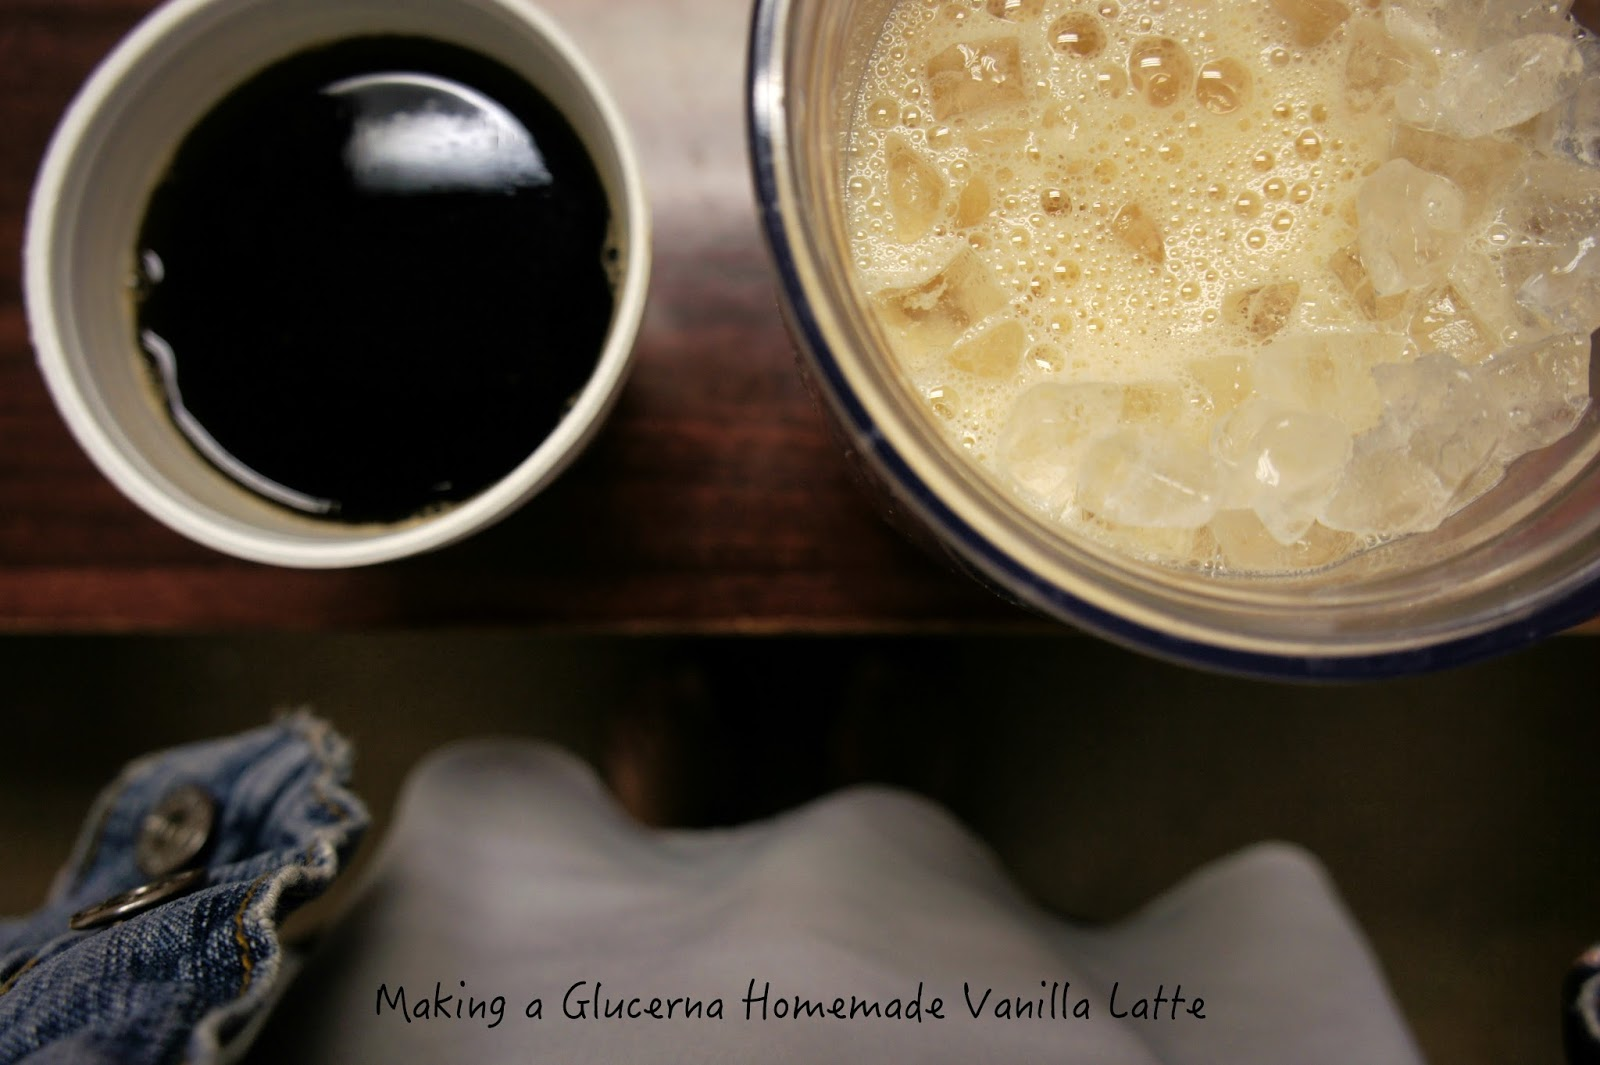 Making a hold-me-steady-till-lunch Glucerna Homemade Vanilla Latte